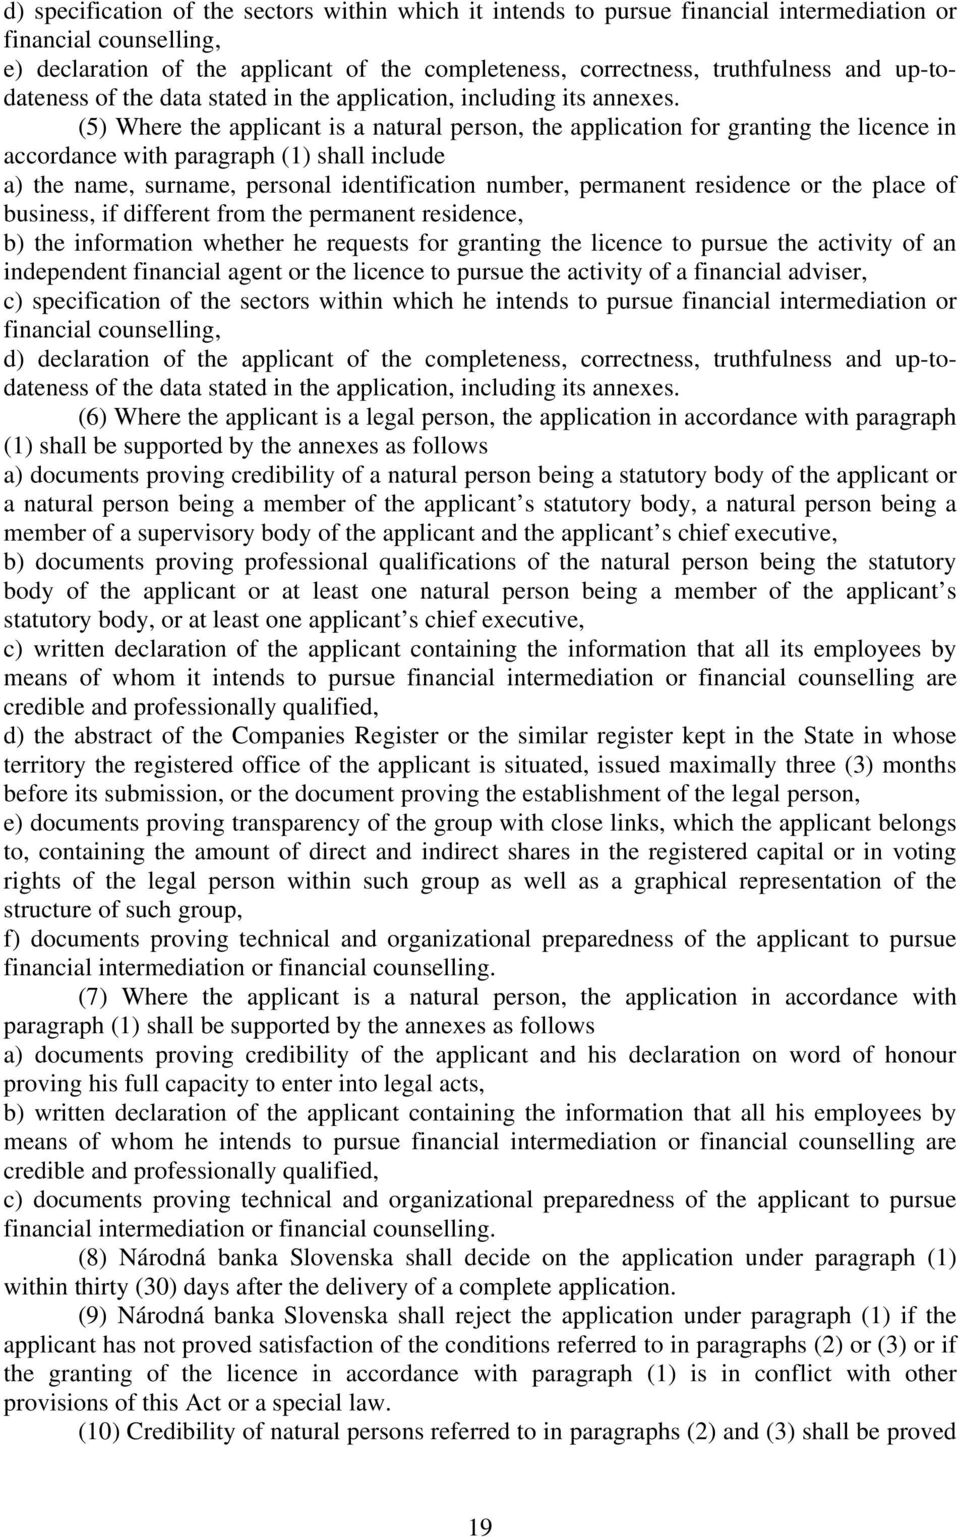 (5) Where the applicant is a natural person, the application for granting the licence in accordance with paragraph (1) shall include a) the name, surname, personal identification number, permanent